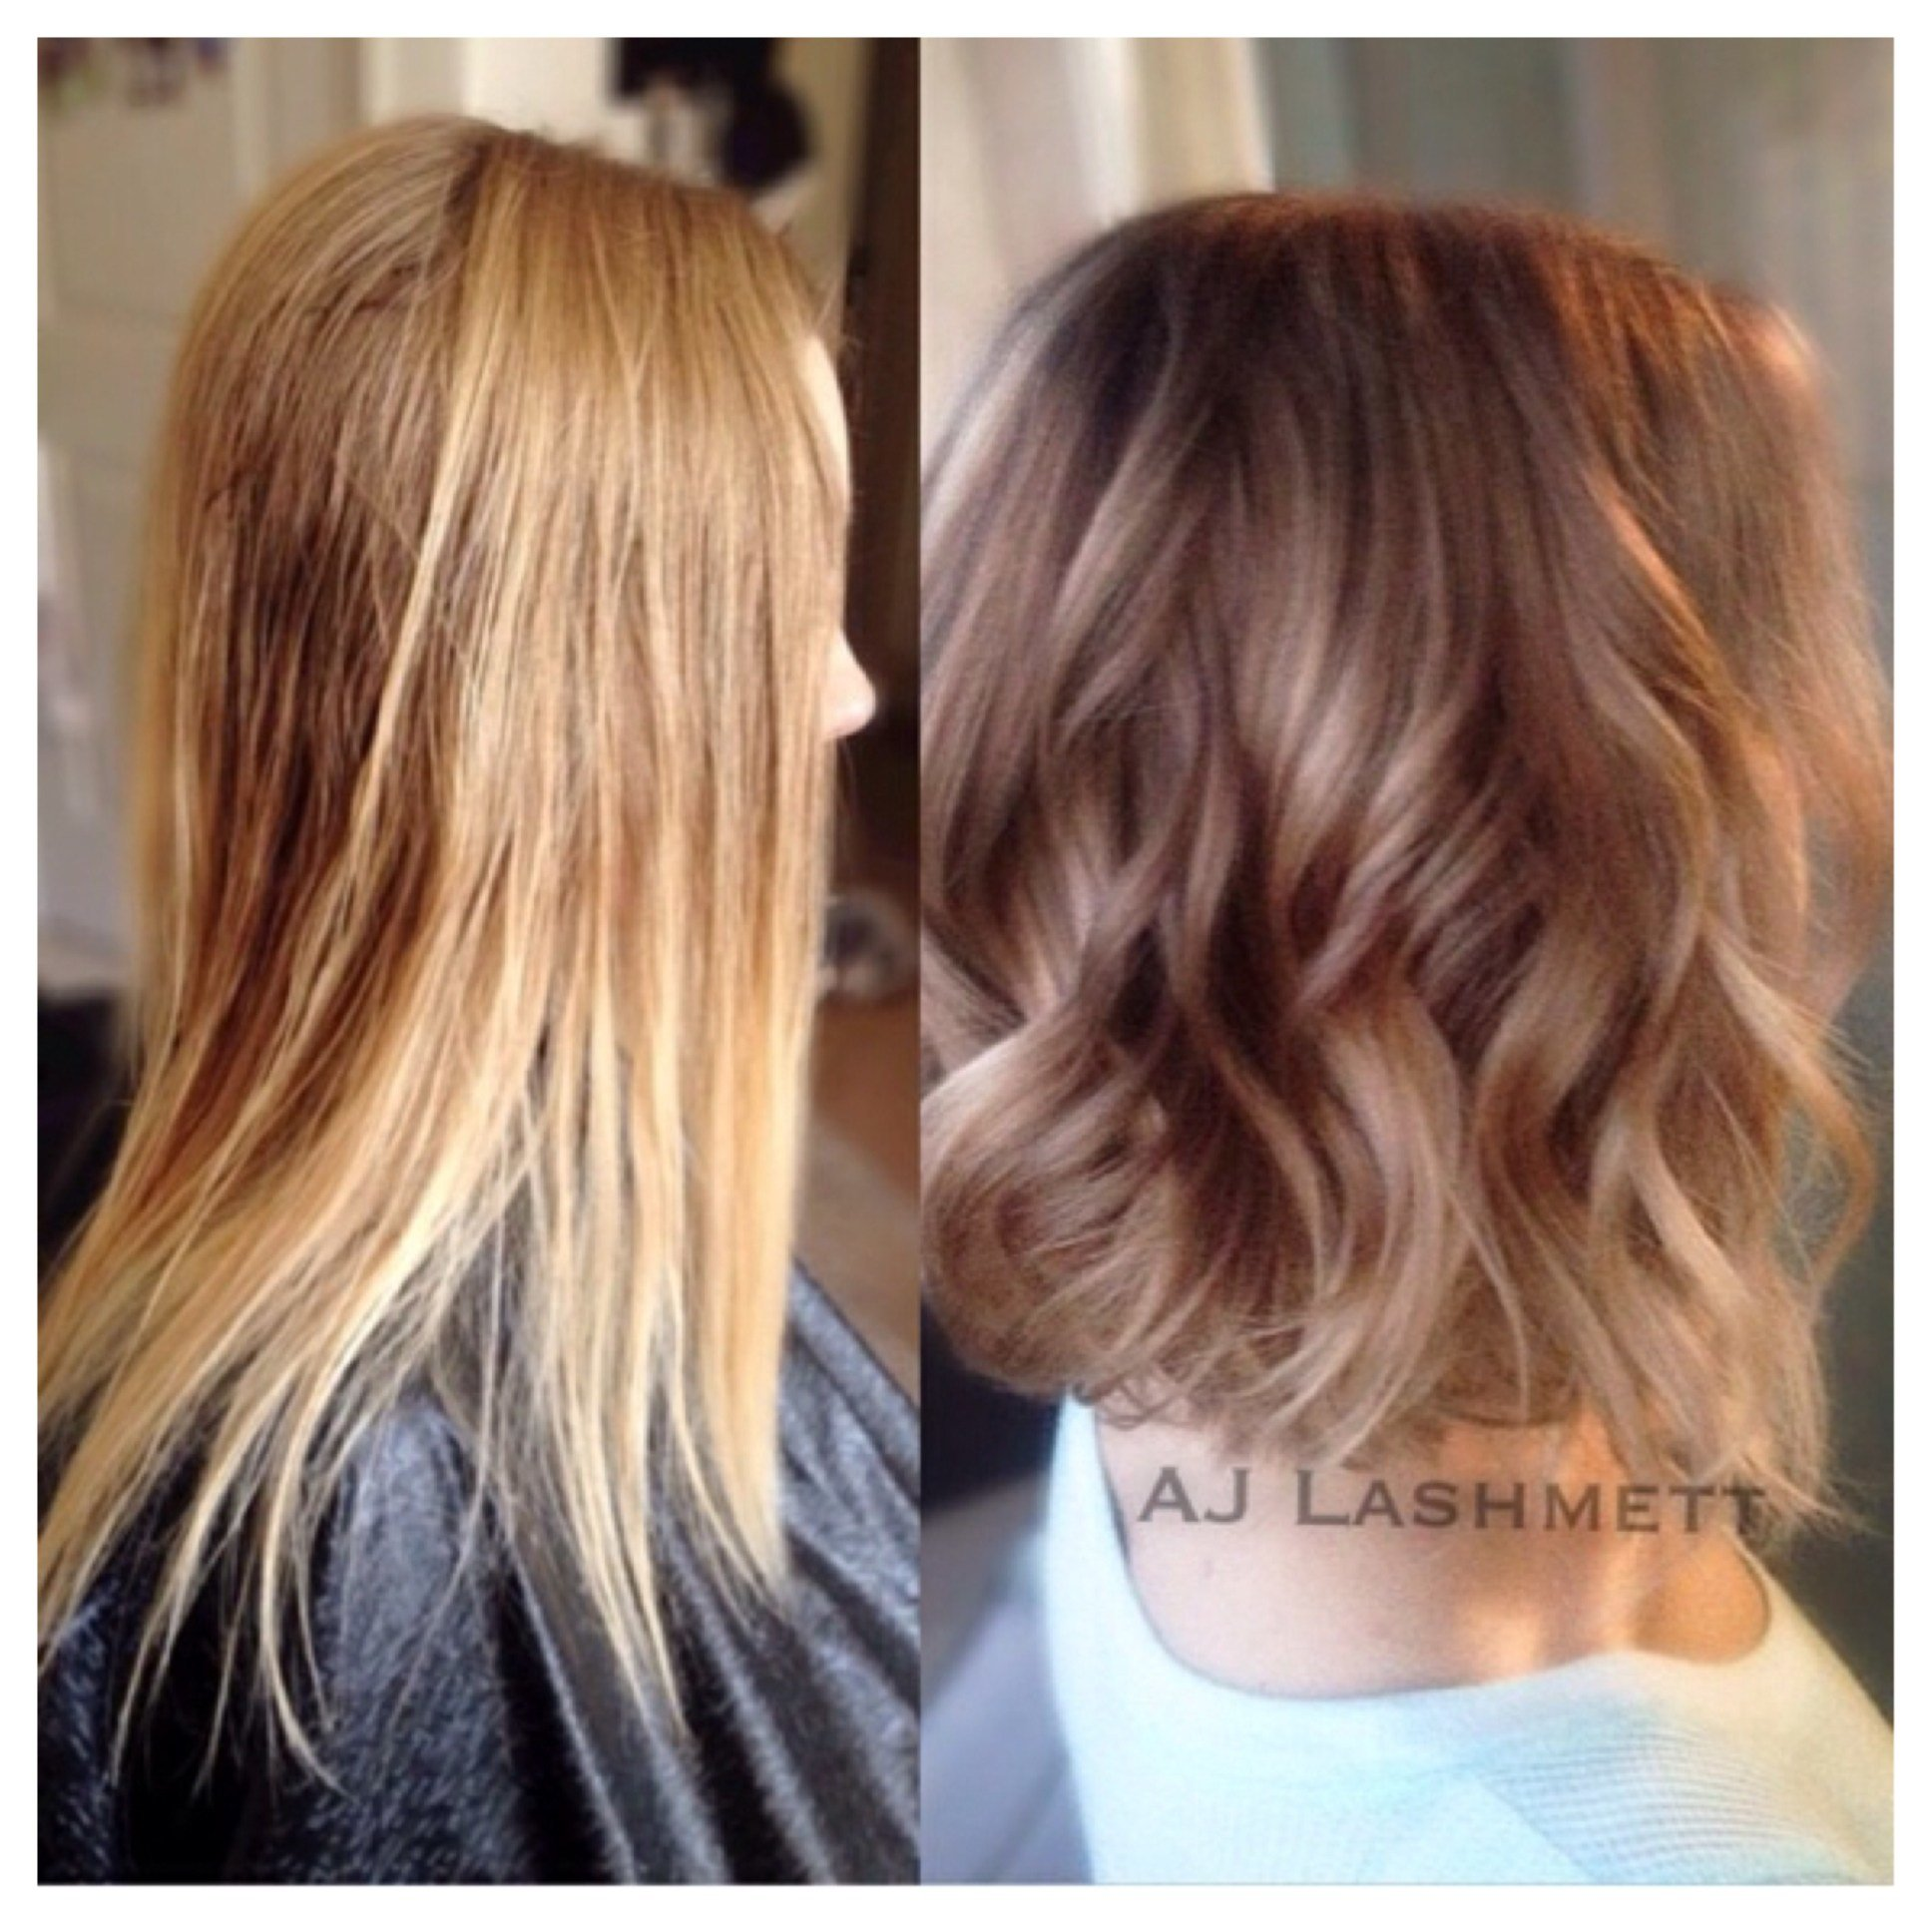 The Best A New Cut And Higher Contrast Color Hair Color Modern Pictures